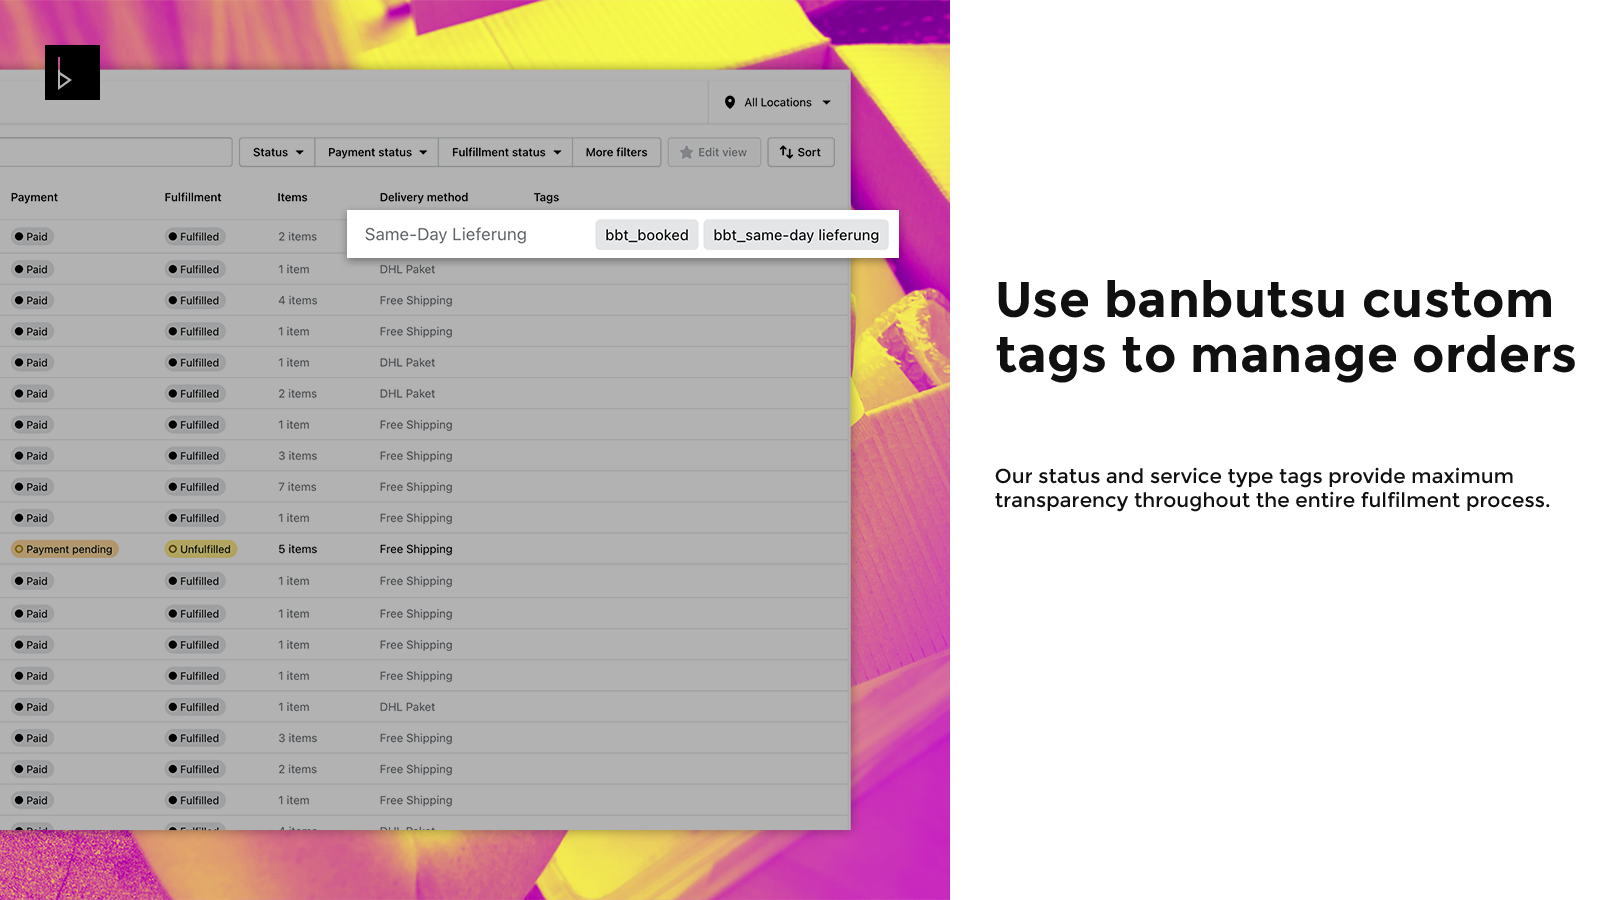 Use banbutsu custom tags to manage your orders